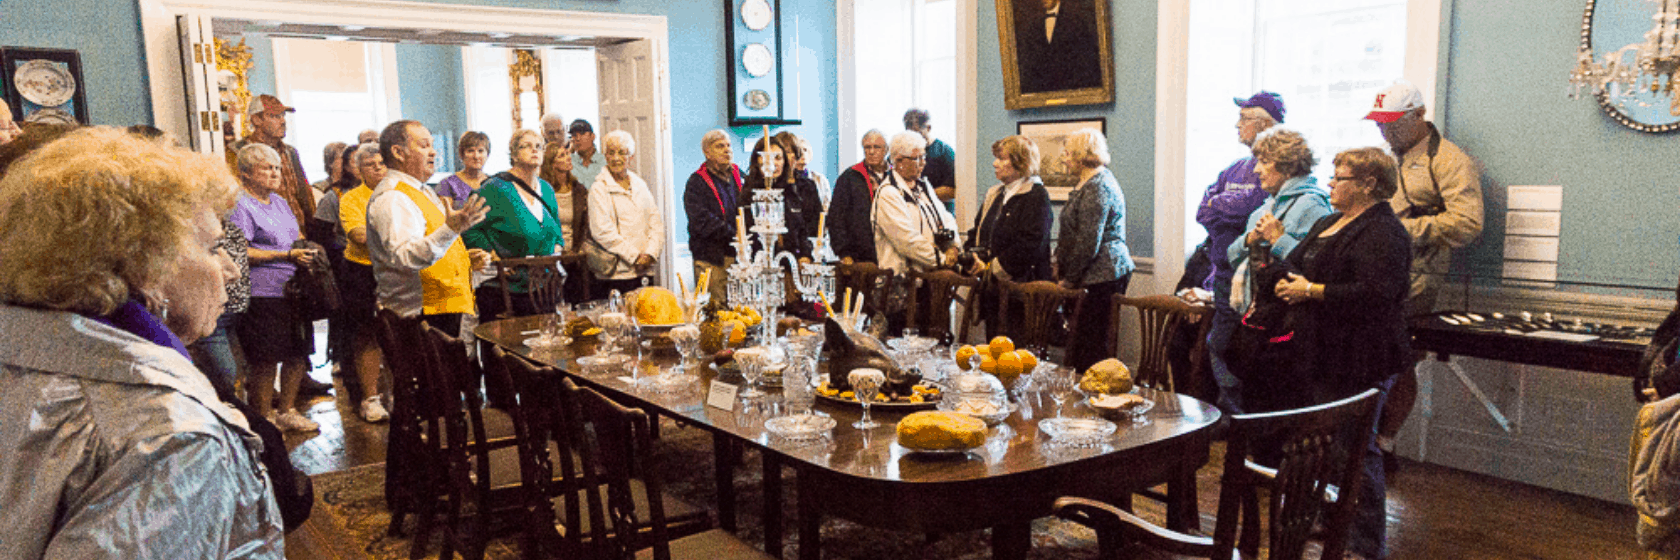 best waterford attractions include visiting the bishop's palace